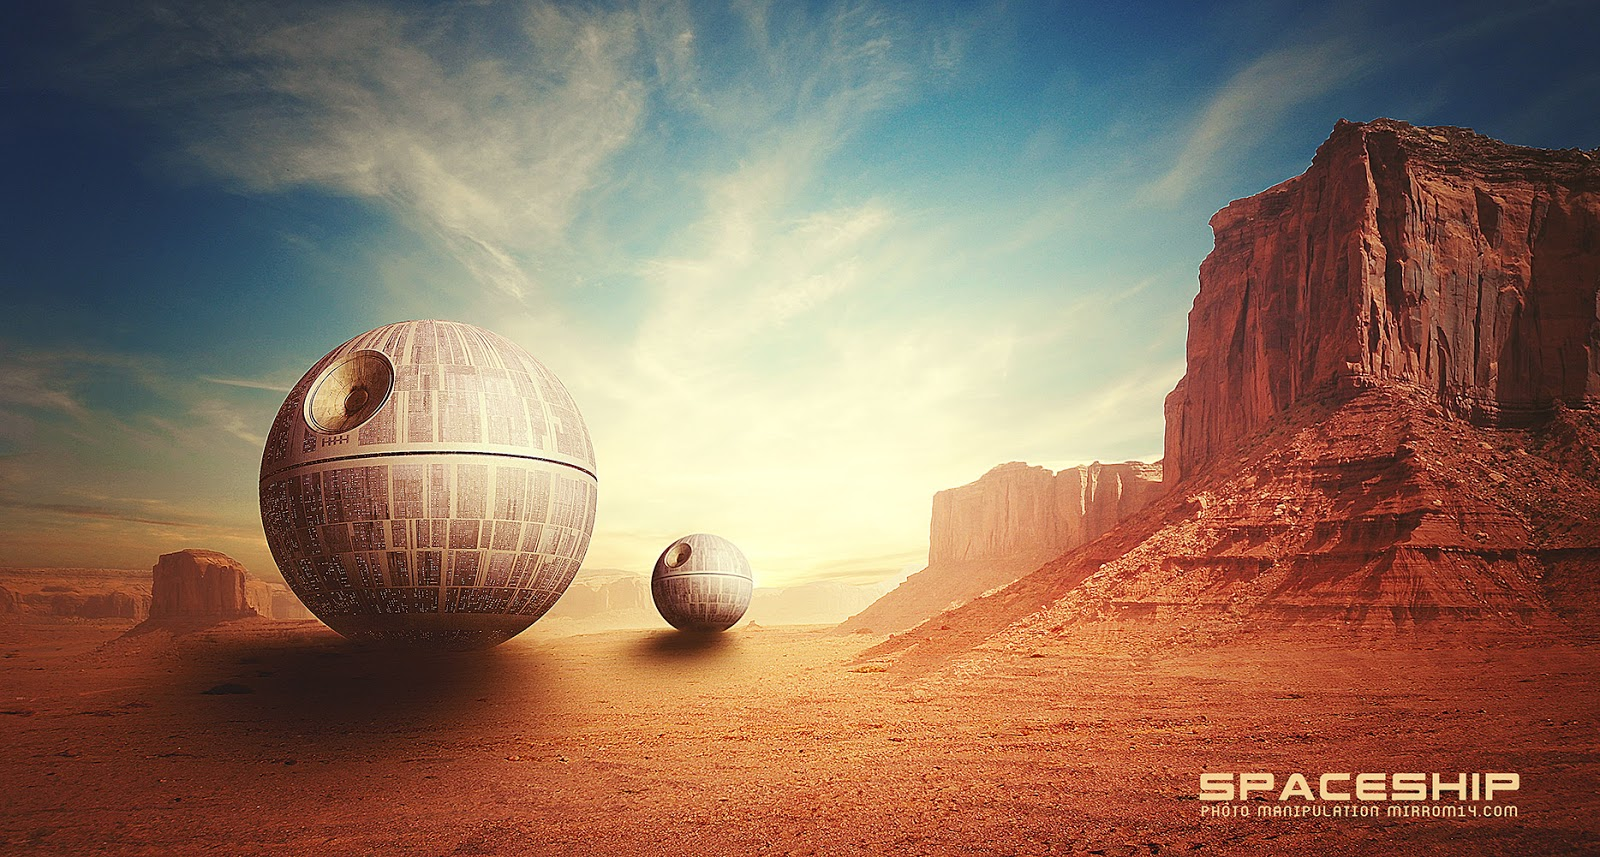 Create a Sci-Fi Photo Manipulation in Photoshop